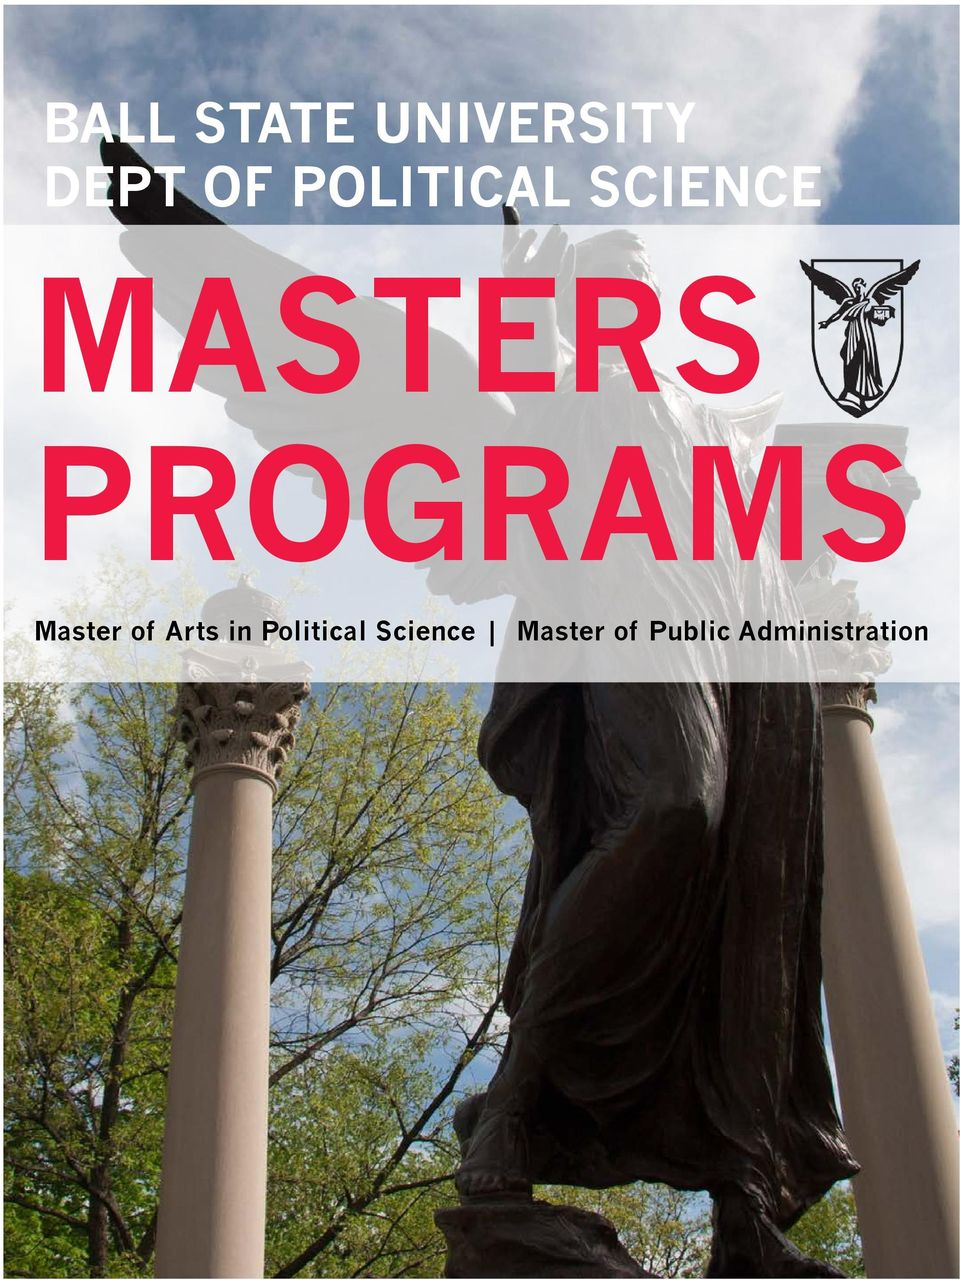 PROGRAMS Master of Arts in